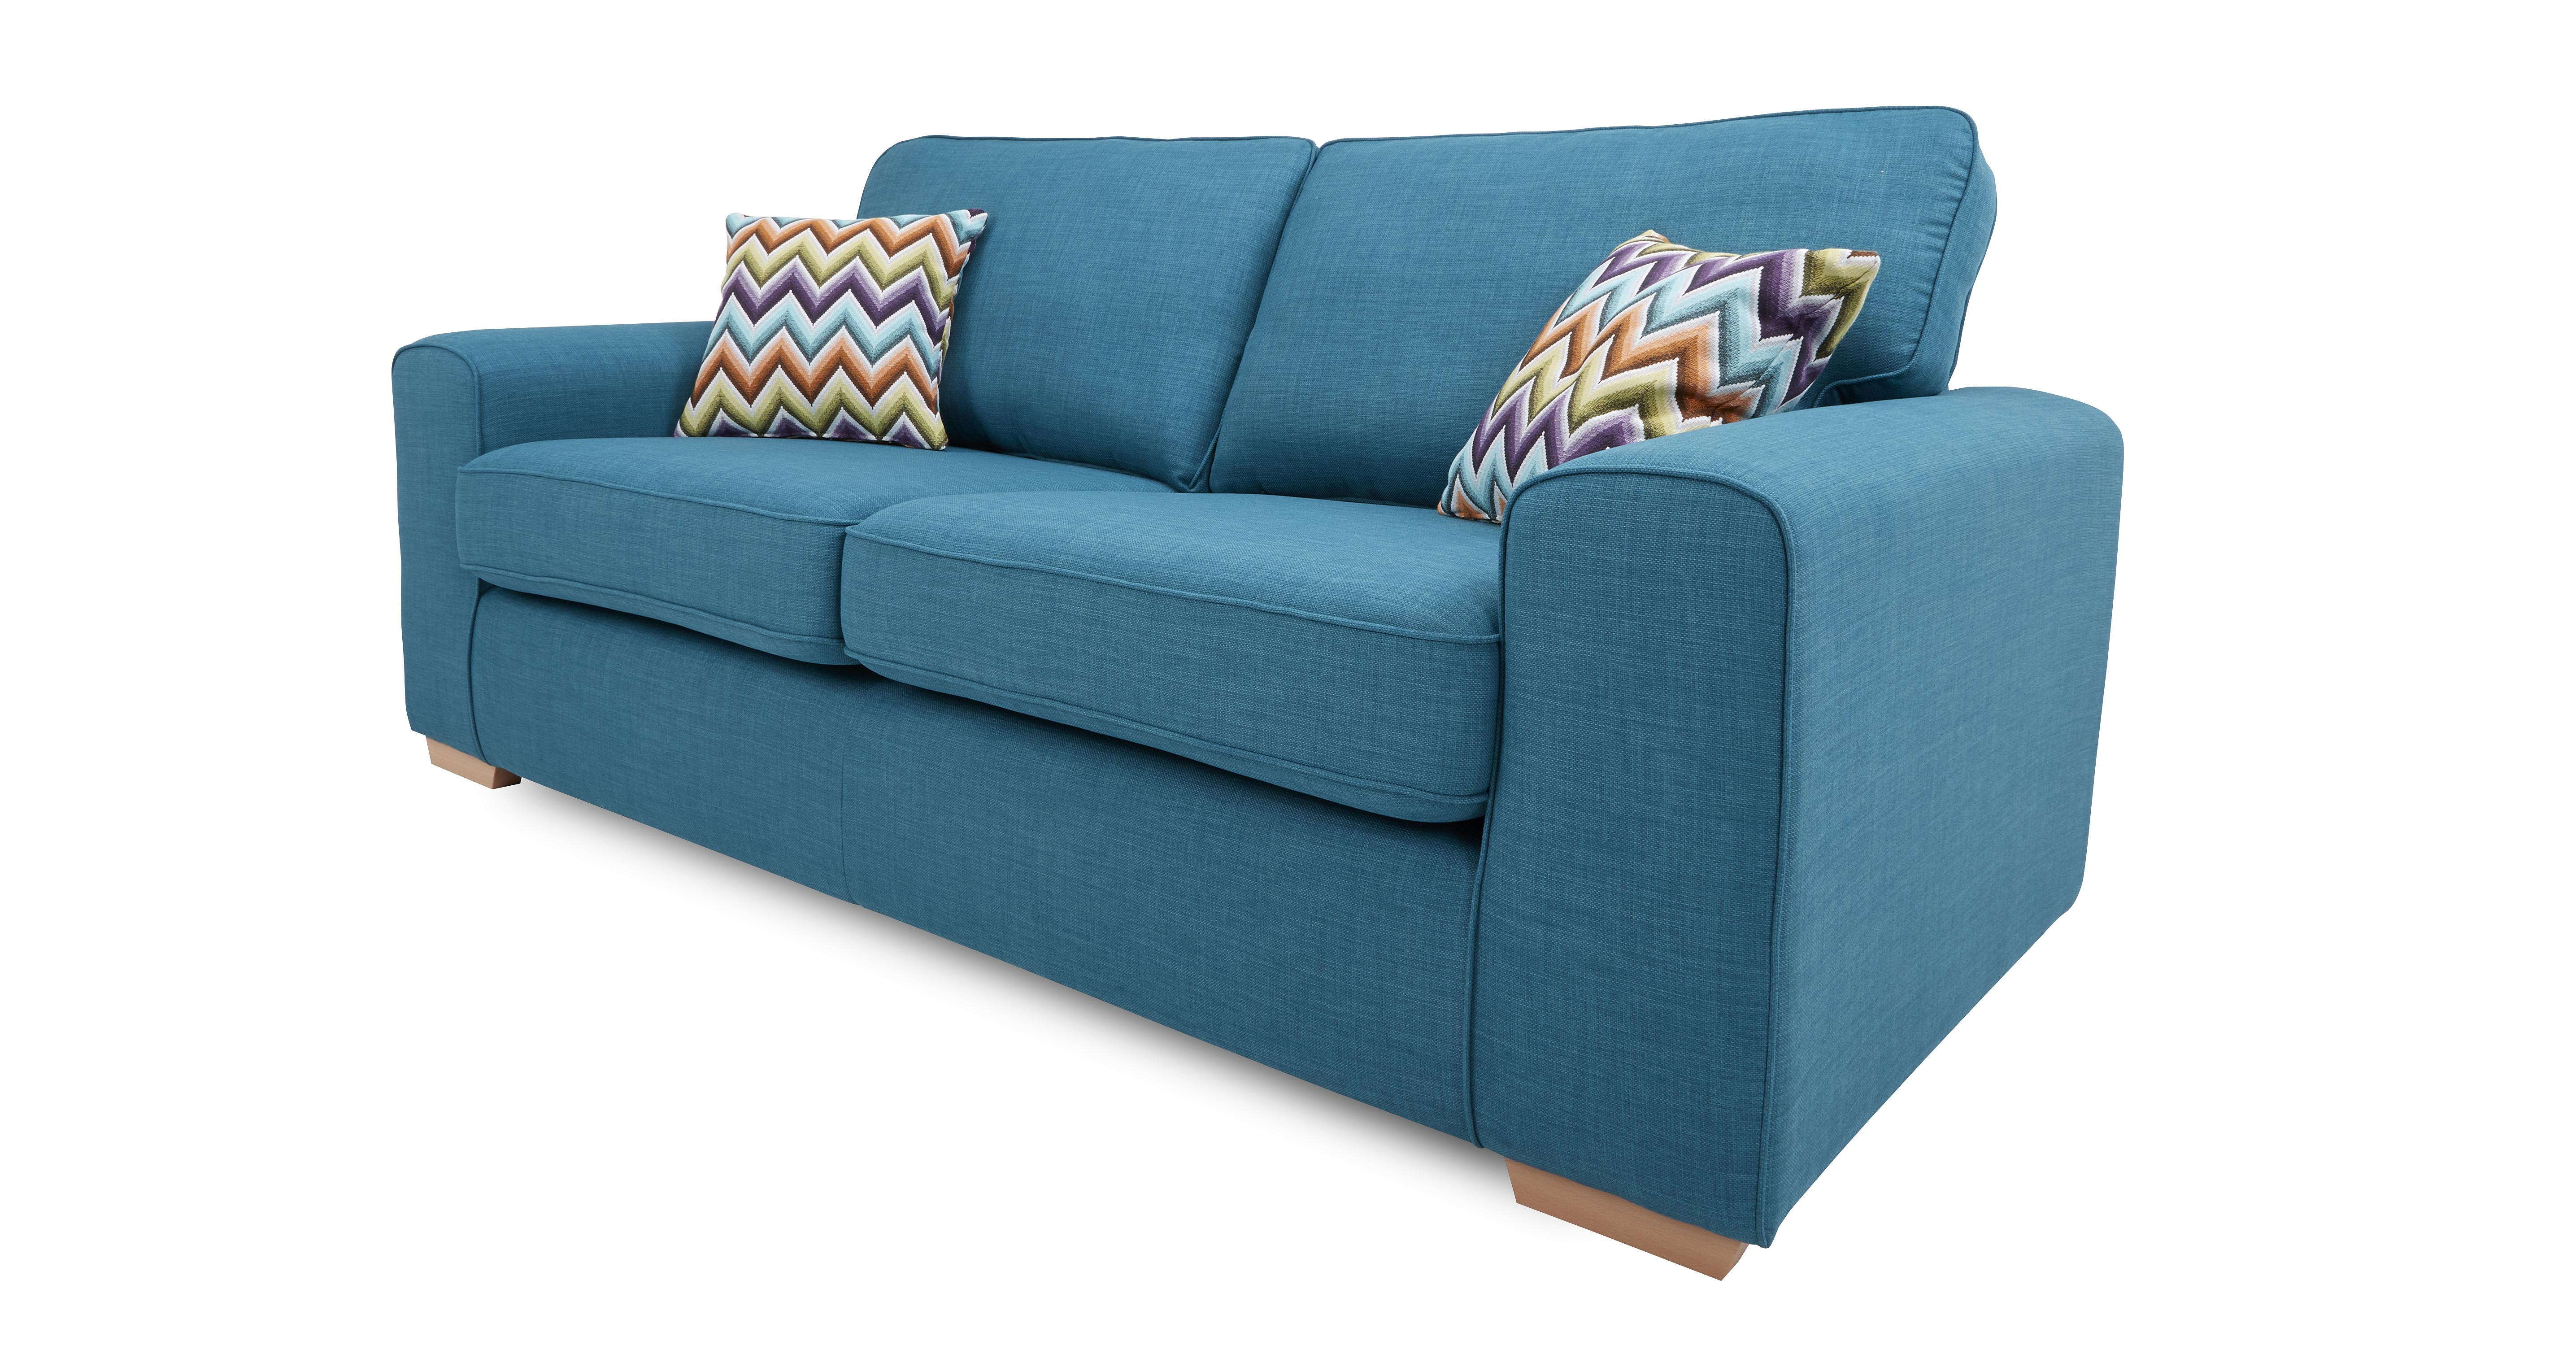 pizzazz sofa bed leather furniture stores nyc dfs teal brokeasshome